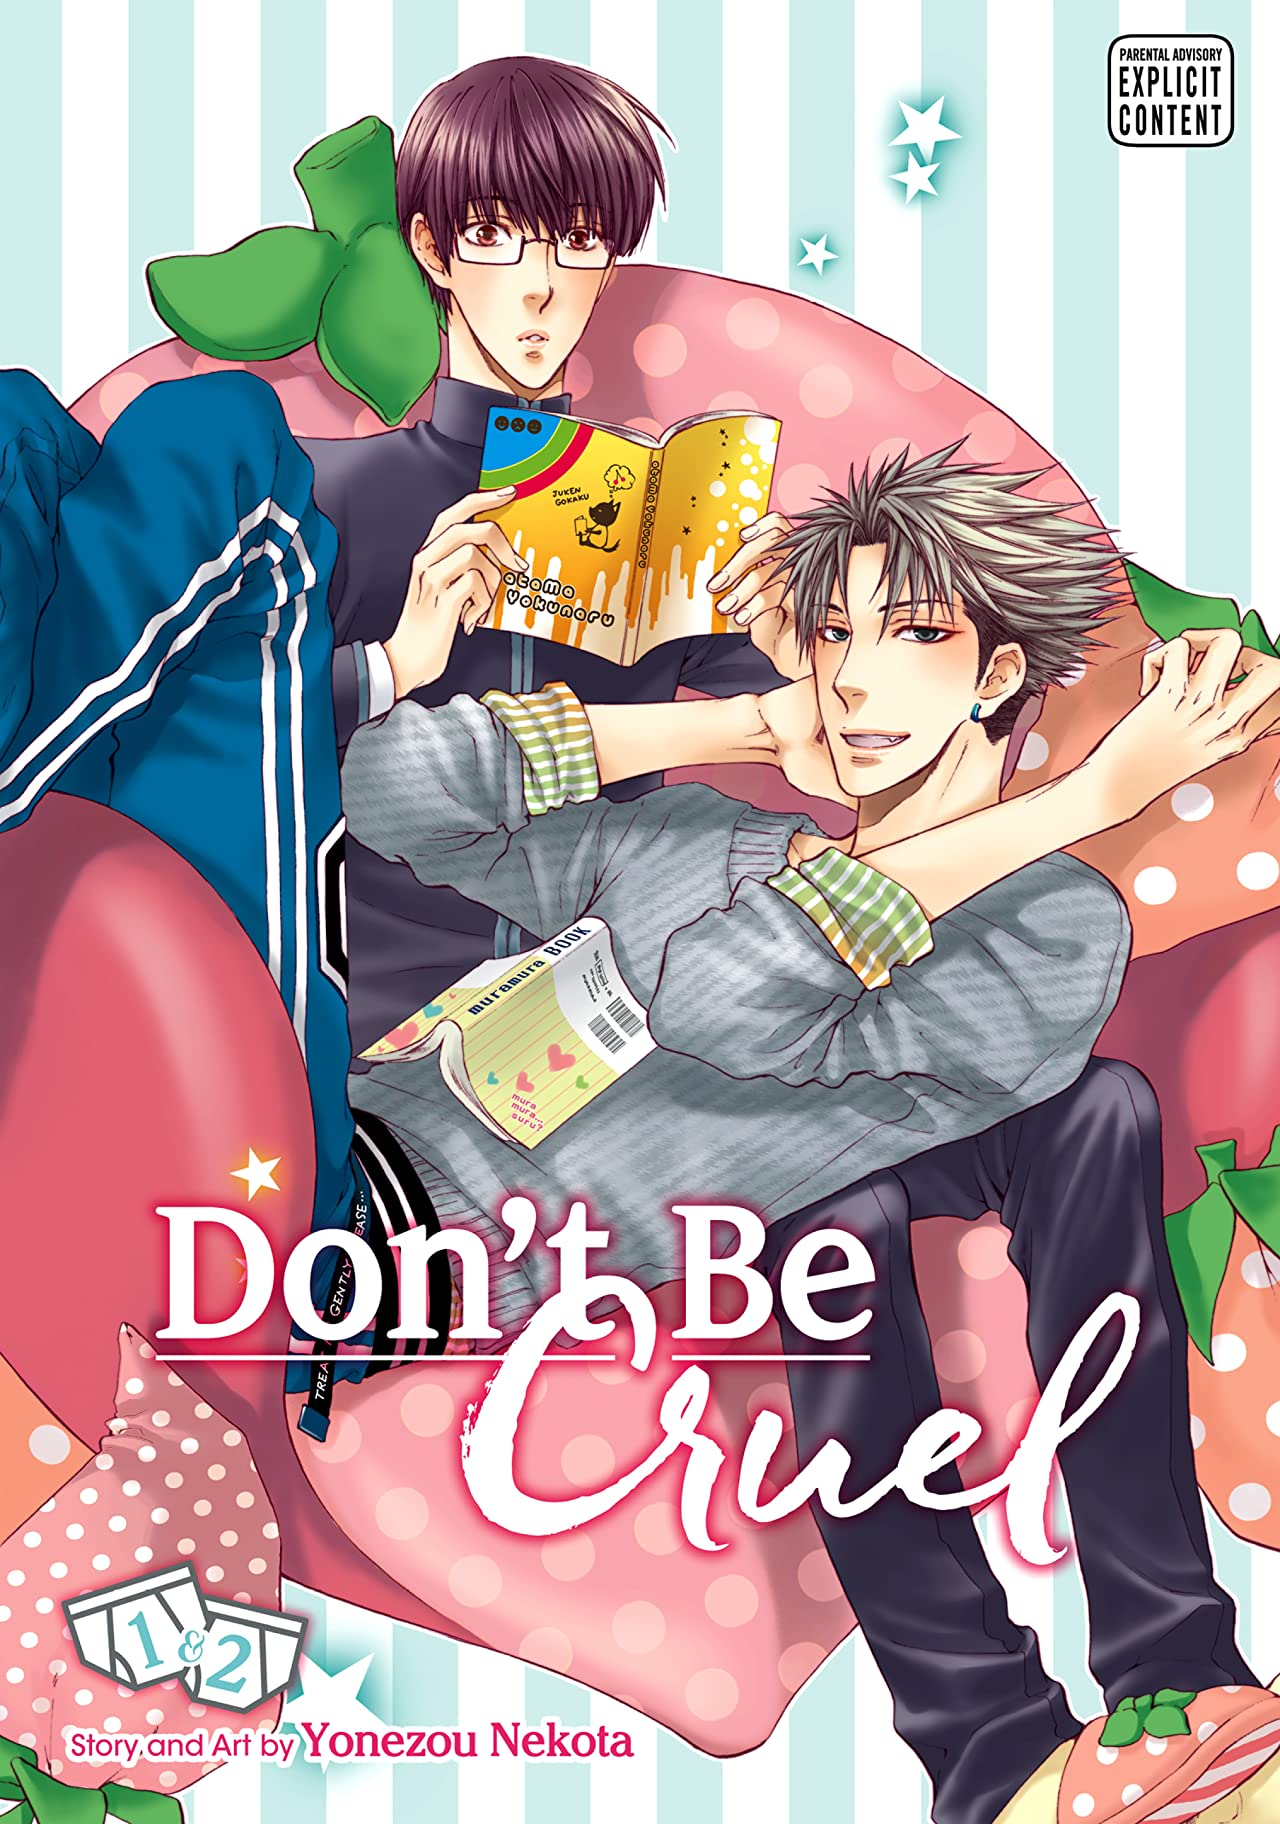 Don't Be Cruel 2-in-1 Edition Vol. 1